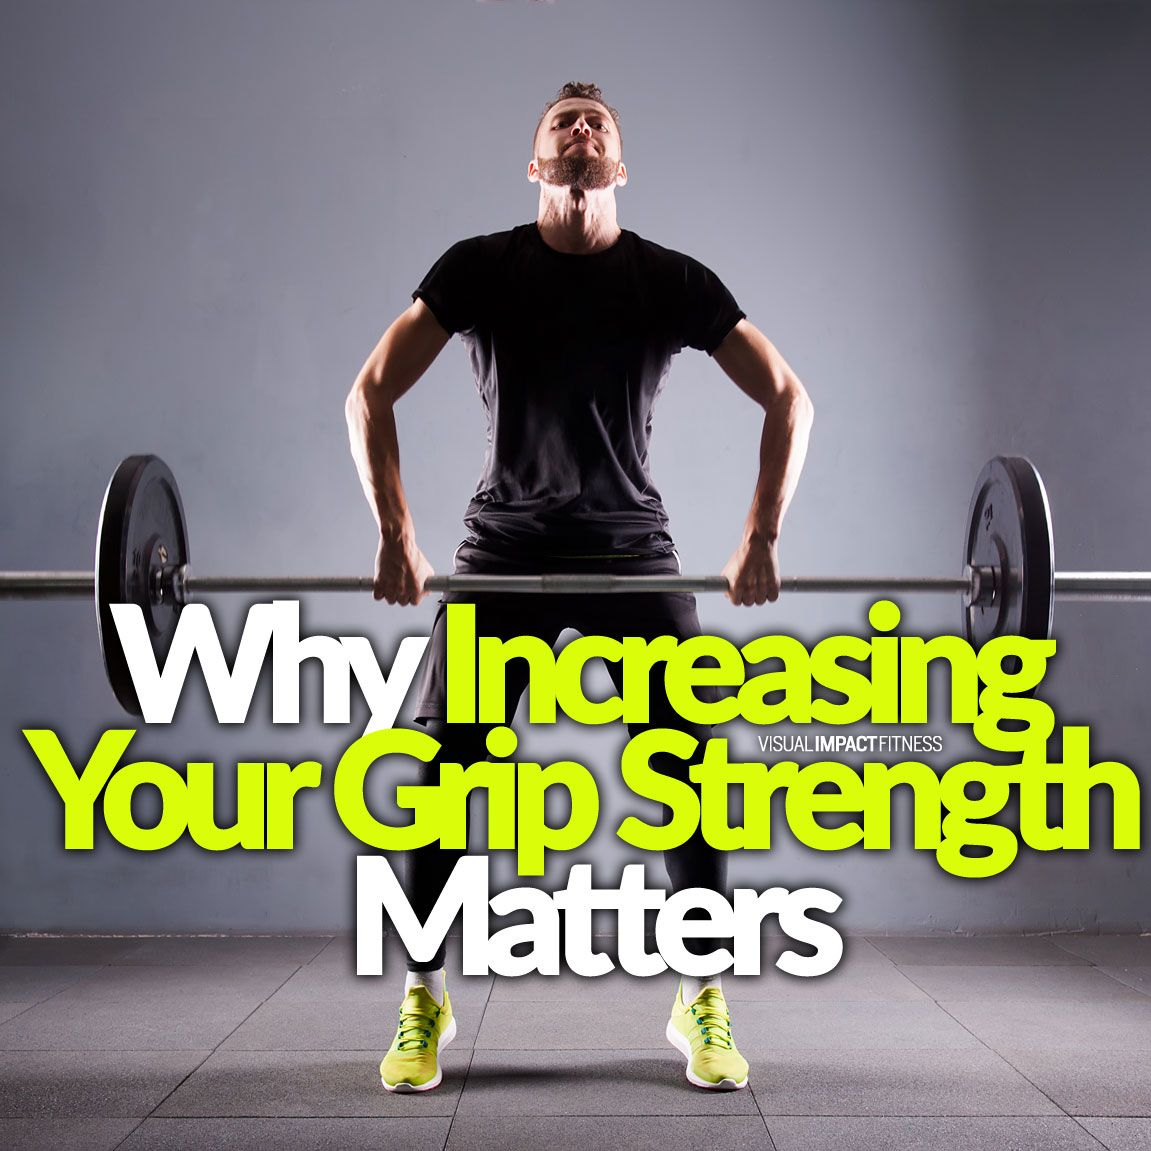 Why Increasing Your Grip Strength Matters Workout Plan For Men Fitness Motivation Grip Strength